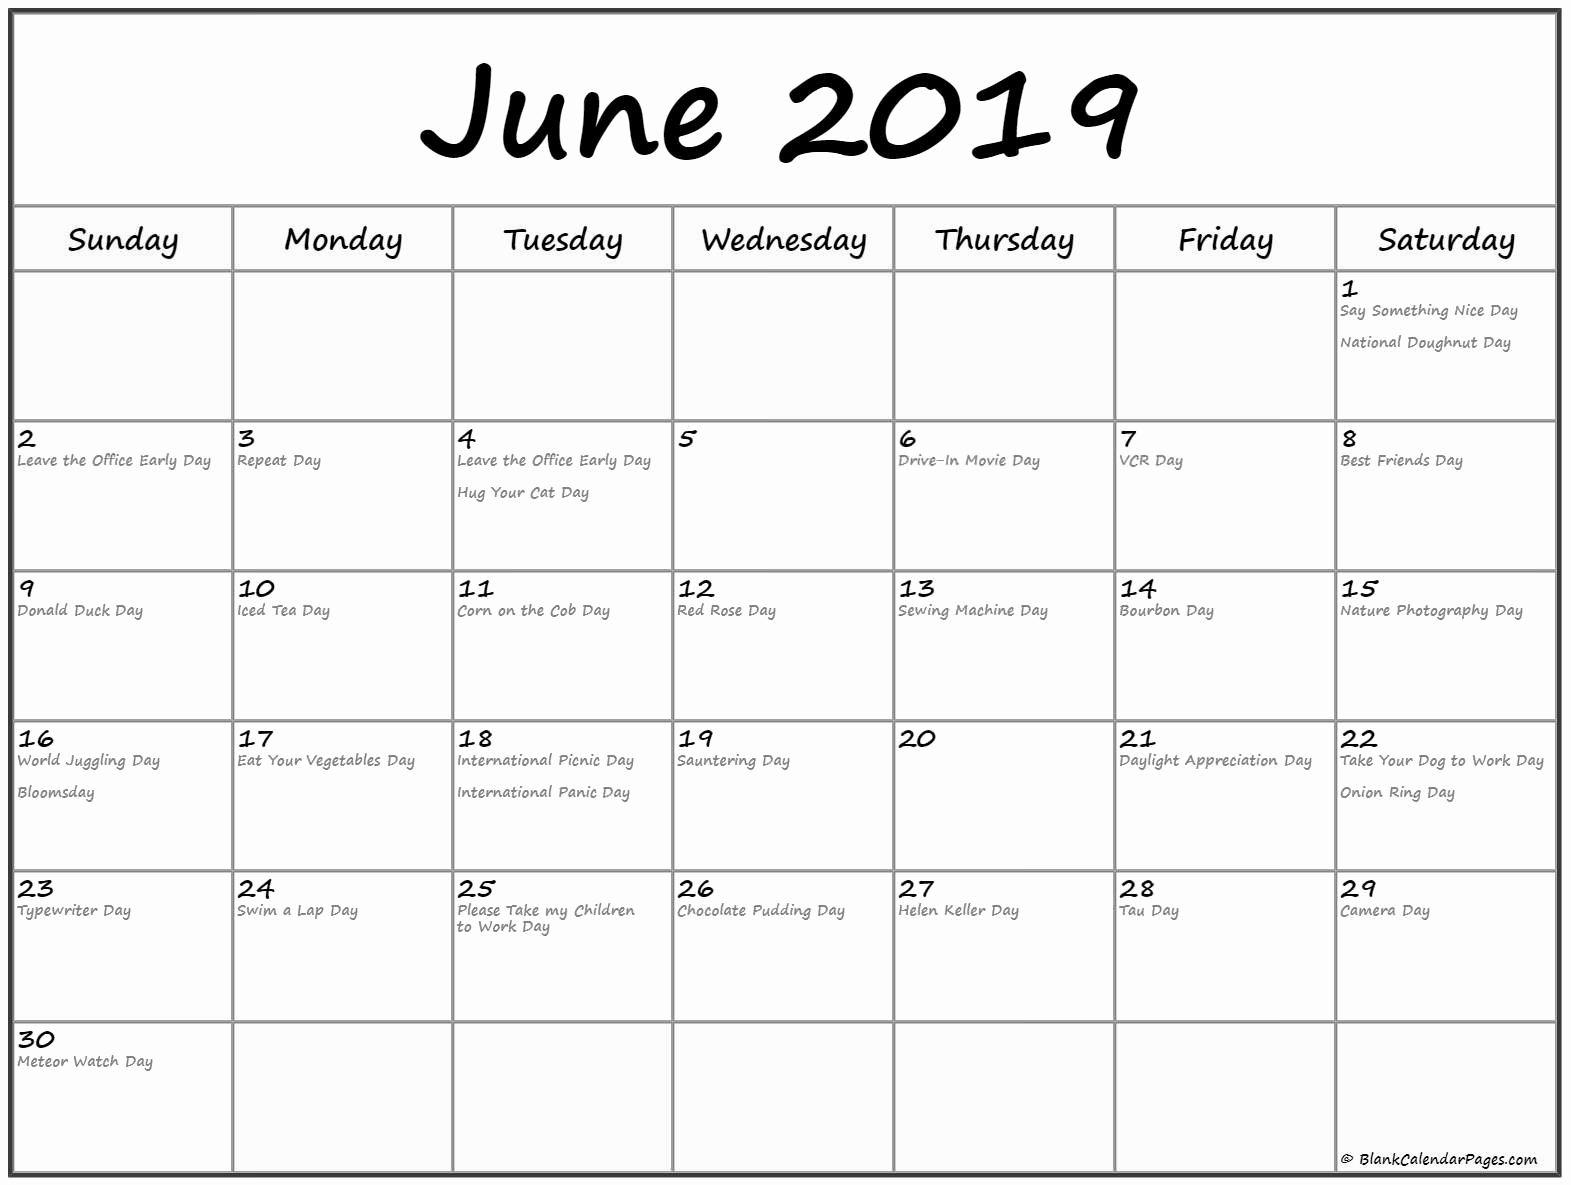 June 2019 Calendar With Holidays Printable Template With